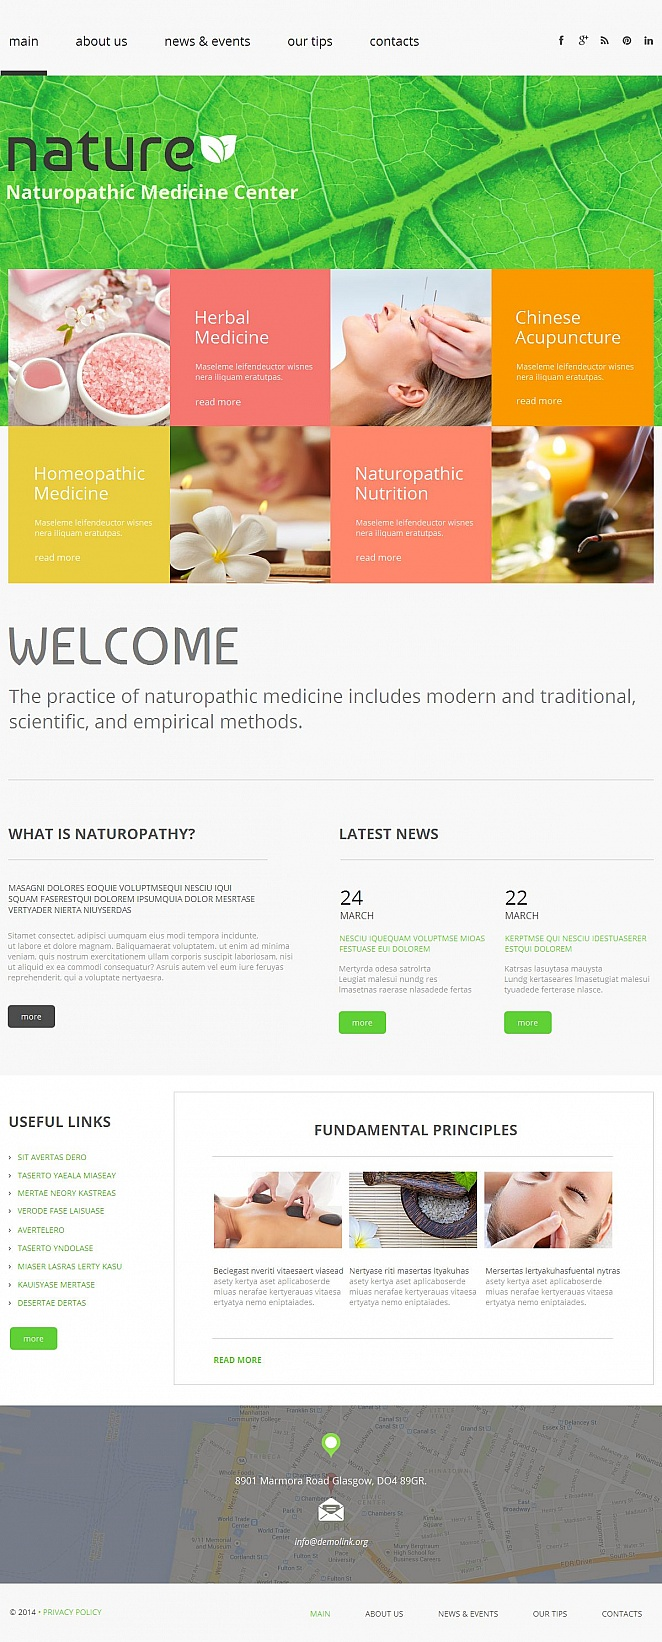 Naturopathic Medicine Website Template - image